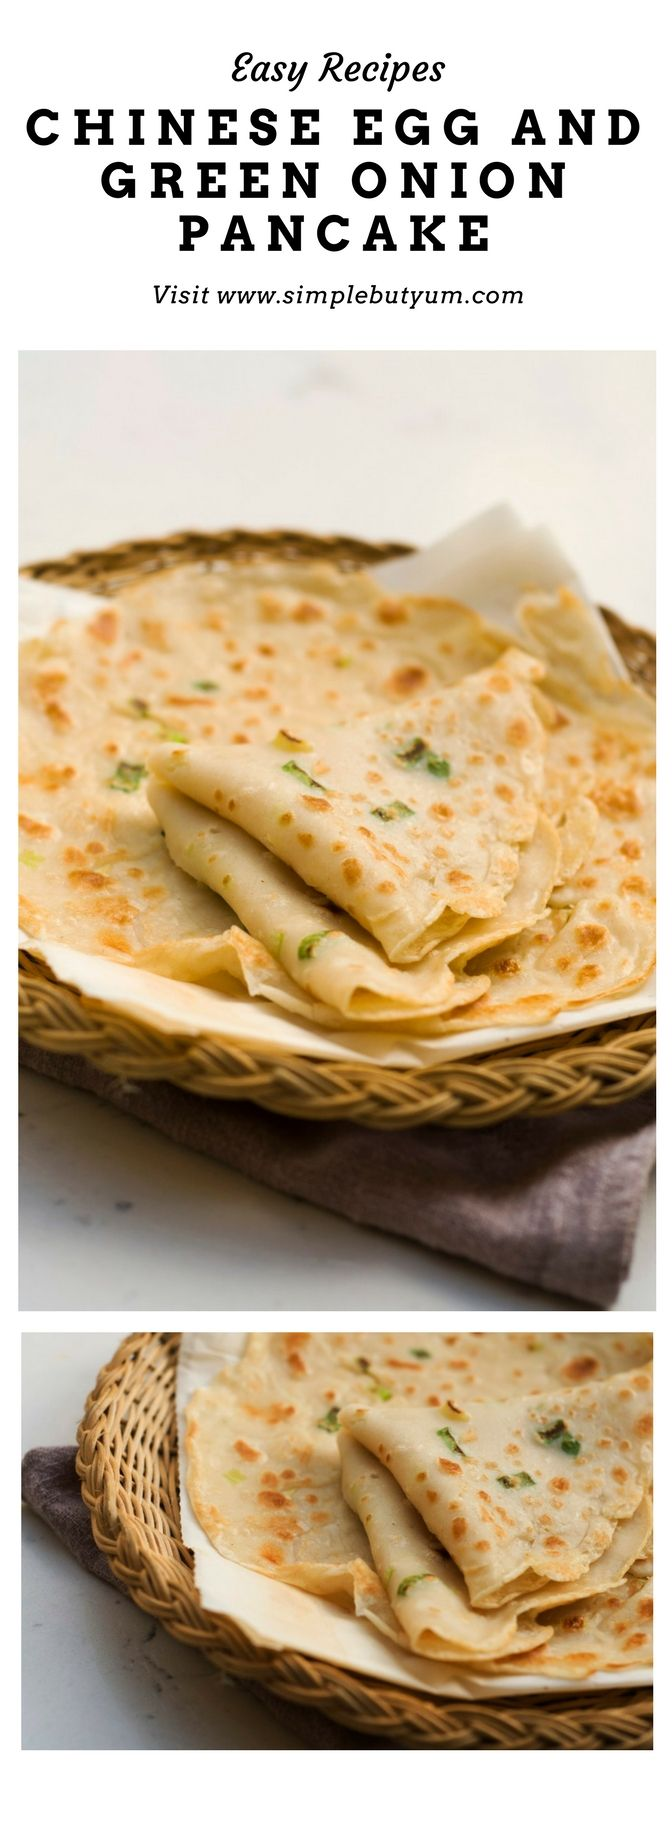 Photo of Chinese Egg and Green Onion Pancake